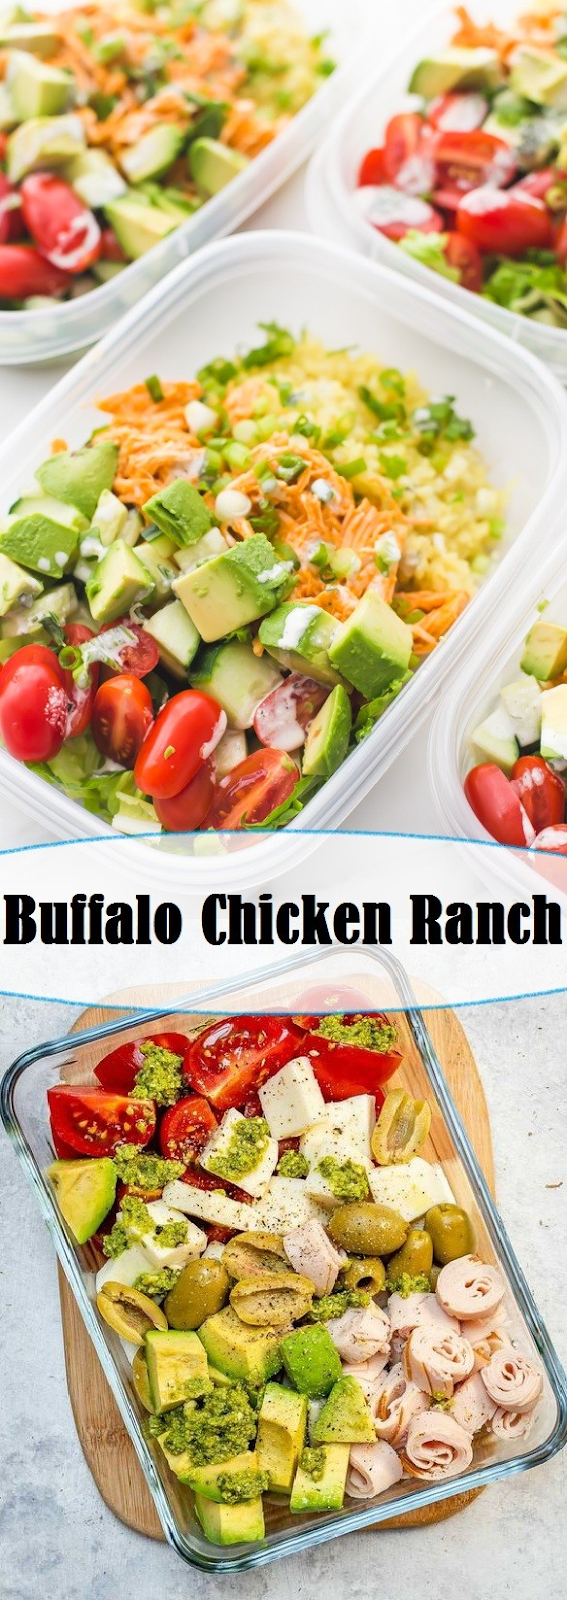 Buffalo Chicken Ranch